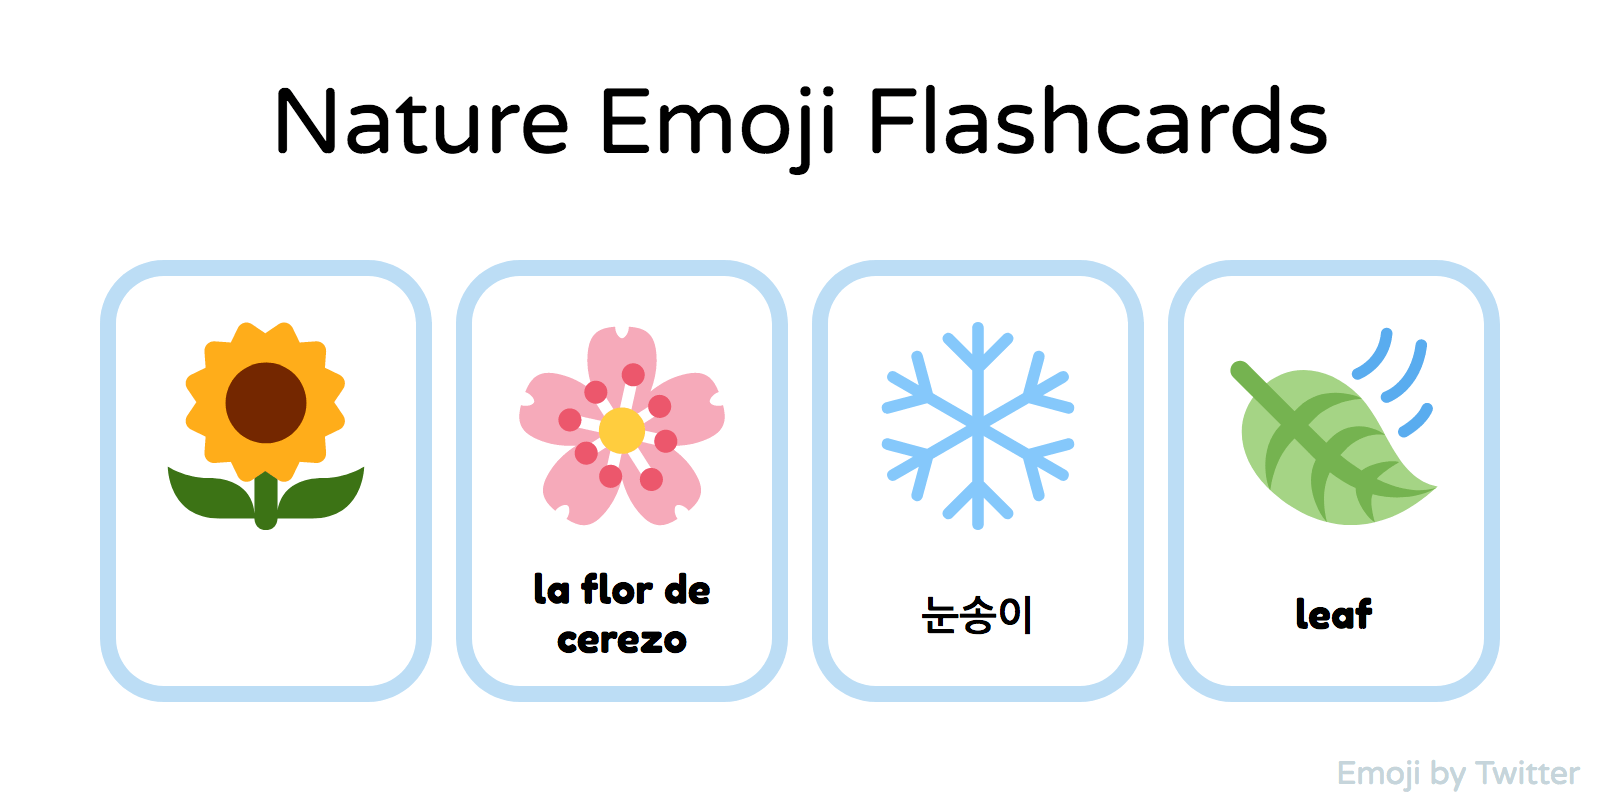 Nature Printable Flashcards